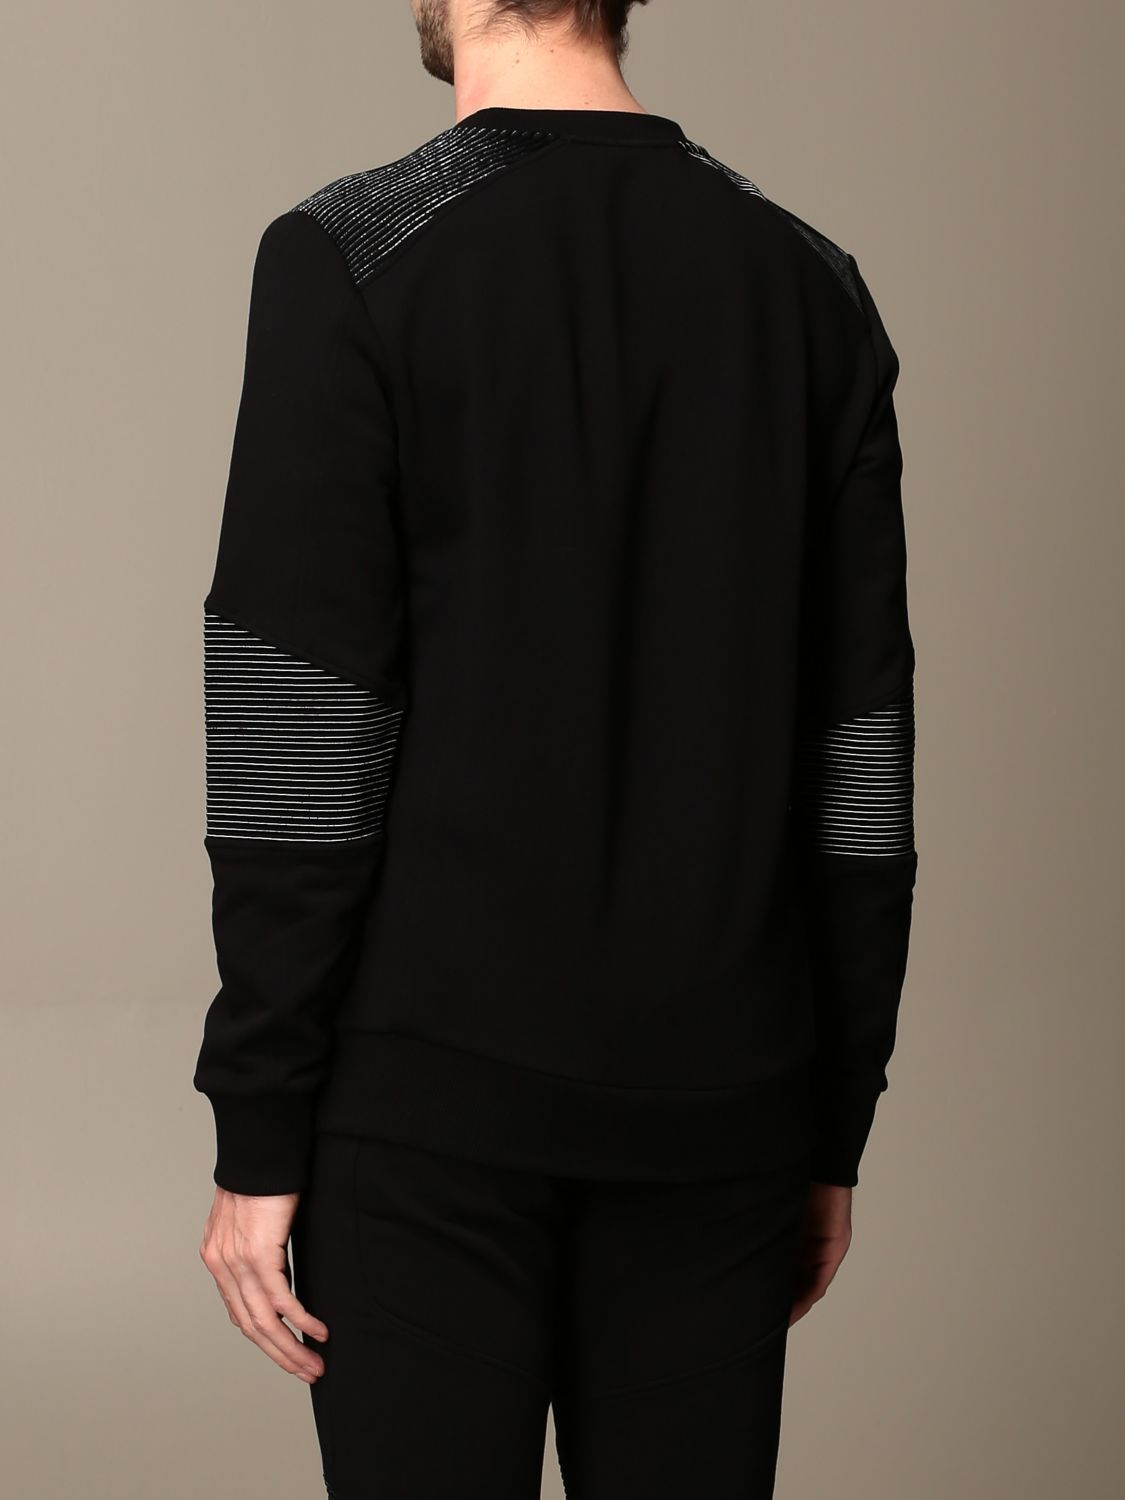 Sweatshirt Balmain: Sweatshirt men Balmain black 3